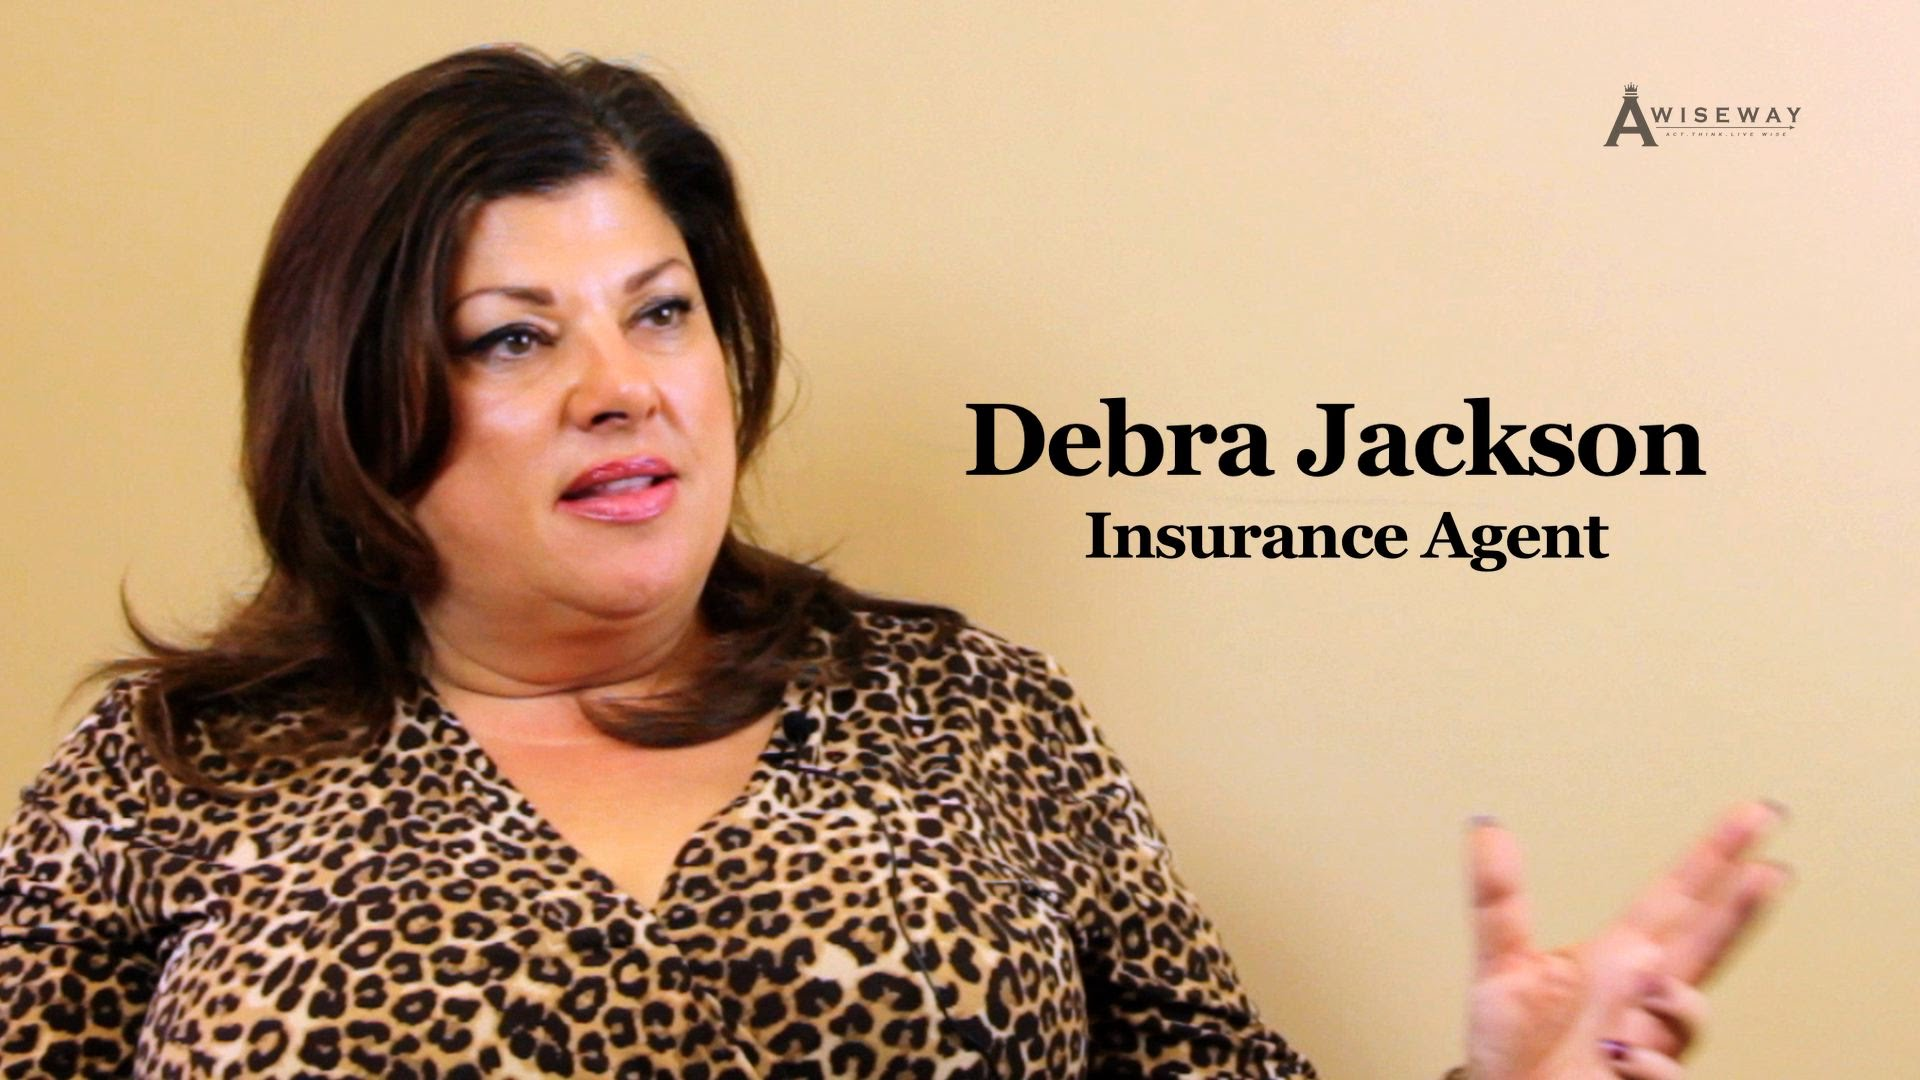 Do I need to carry health insurance if I never get sick?